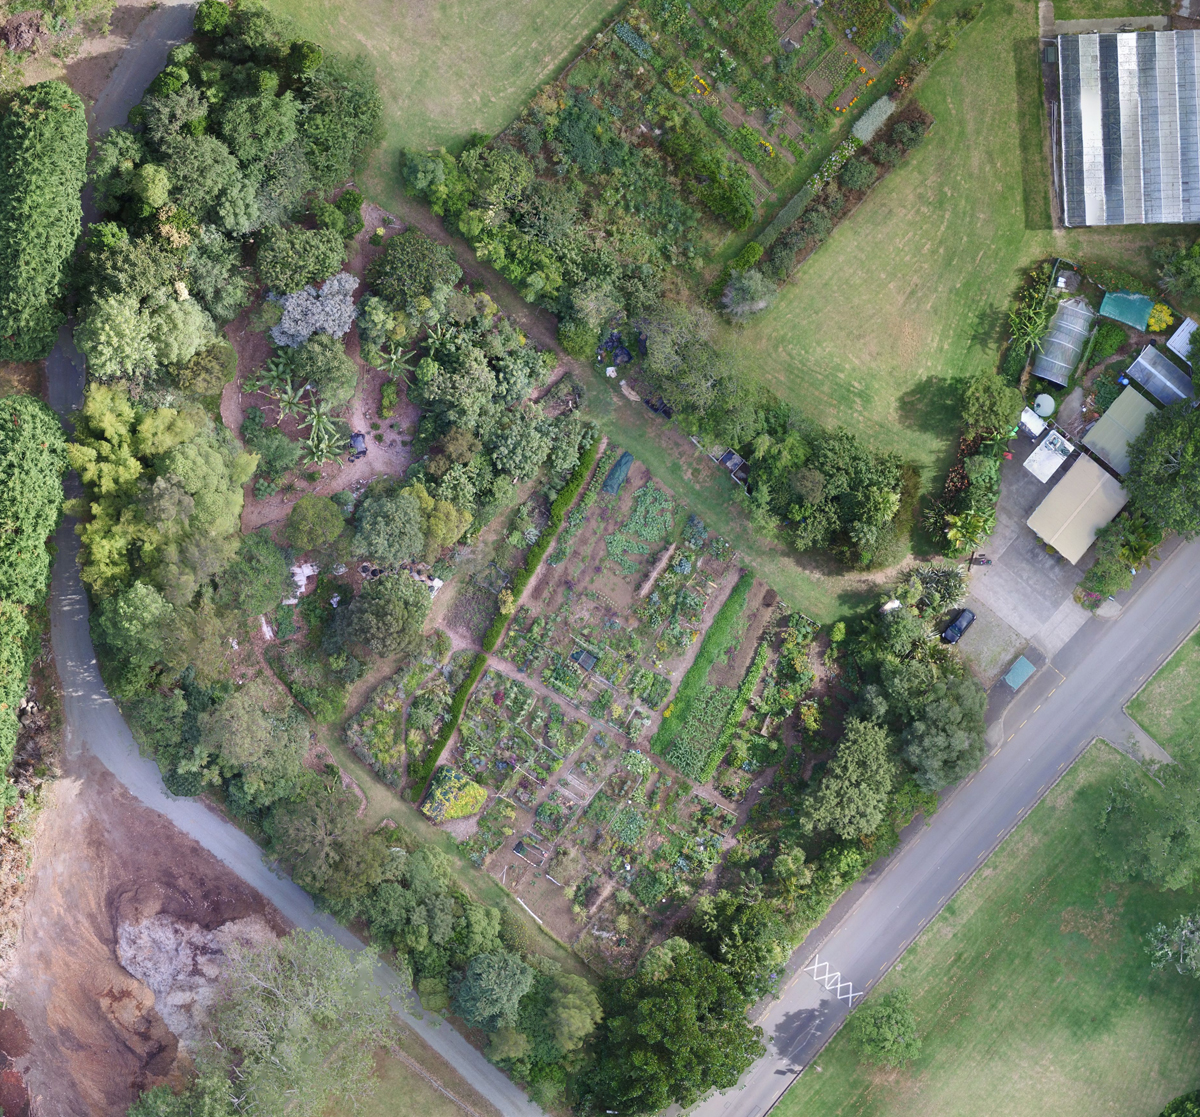 Since Unitec Informed Our Steering Group In March This Year Of Unitecu0027s  Intention To Sell The Piece Of Land Containing The Sanctuary, We Have  Sought Clarity ...